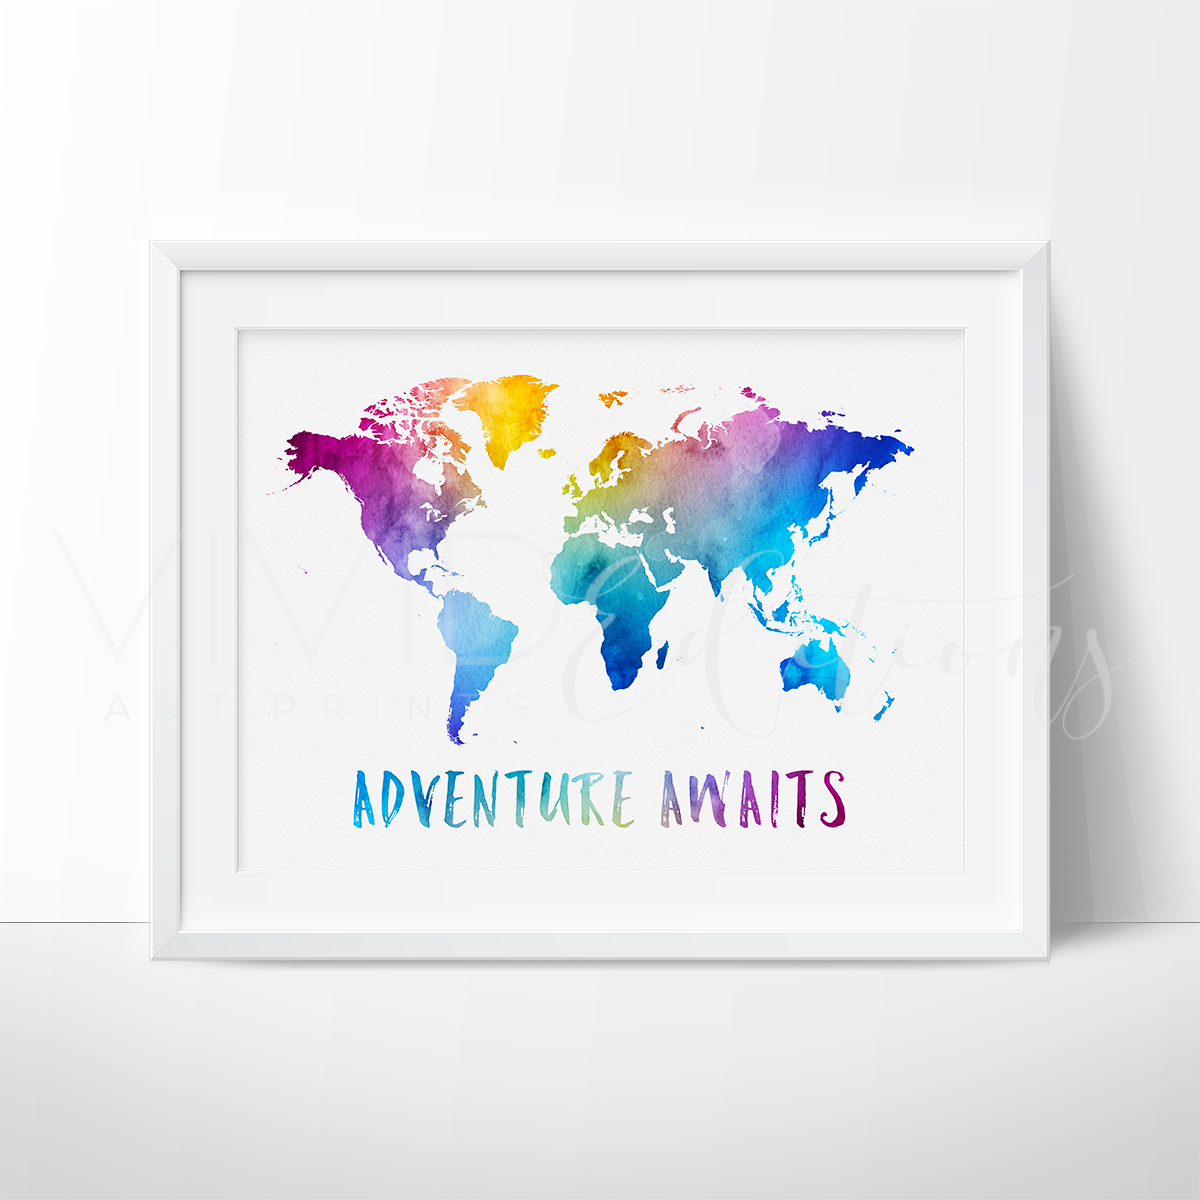 Adventure awaits travel quote world map watercolor art print adventure awaits travel quote world map watercolor art print art print vivideditions gumiabroncs Choice Image